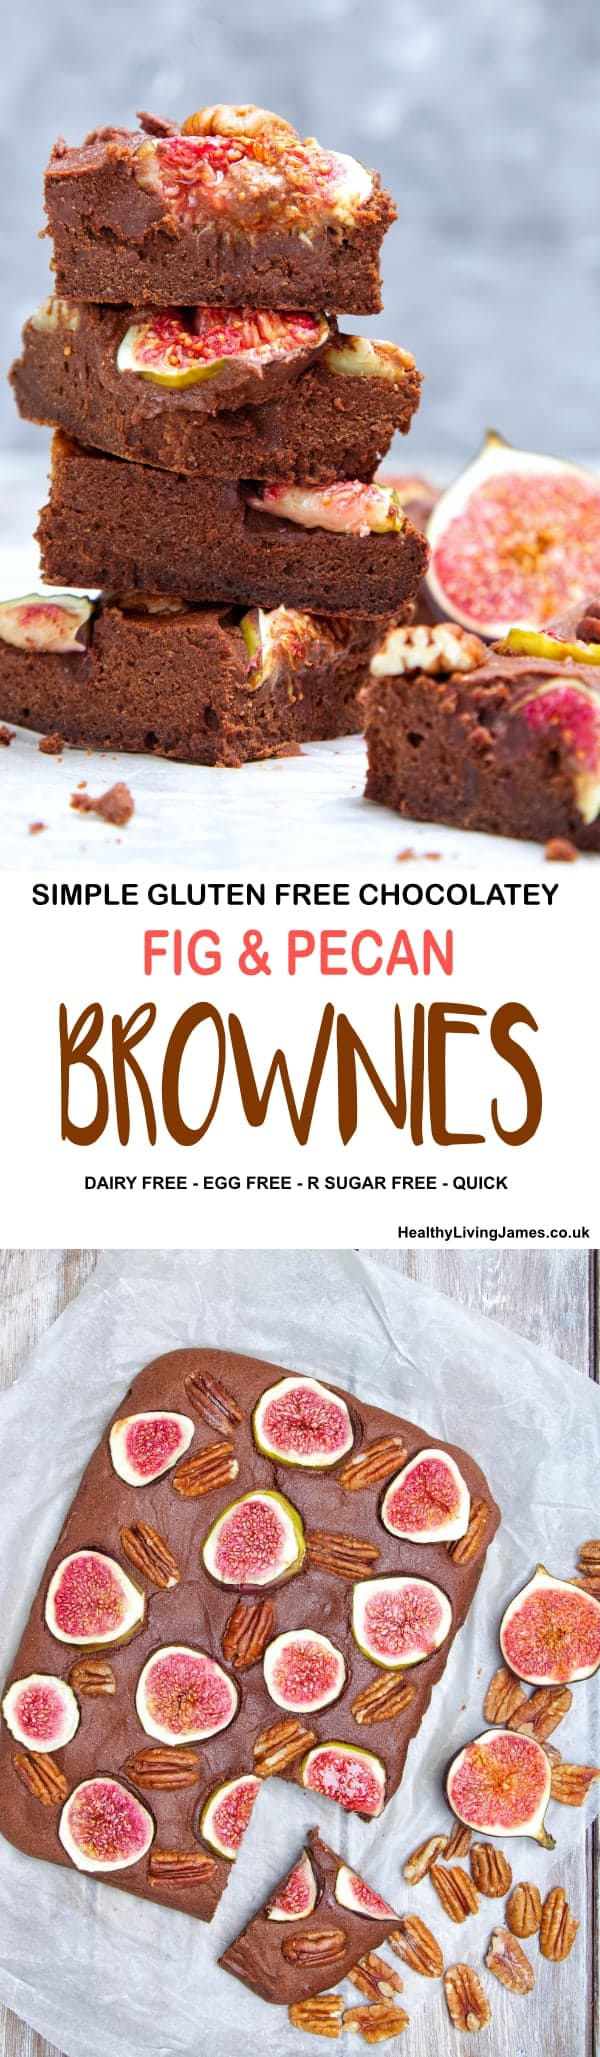 Fig & Pecan Brownies Pinterest